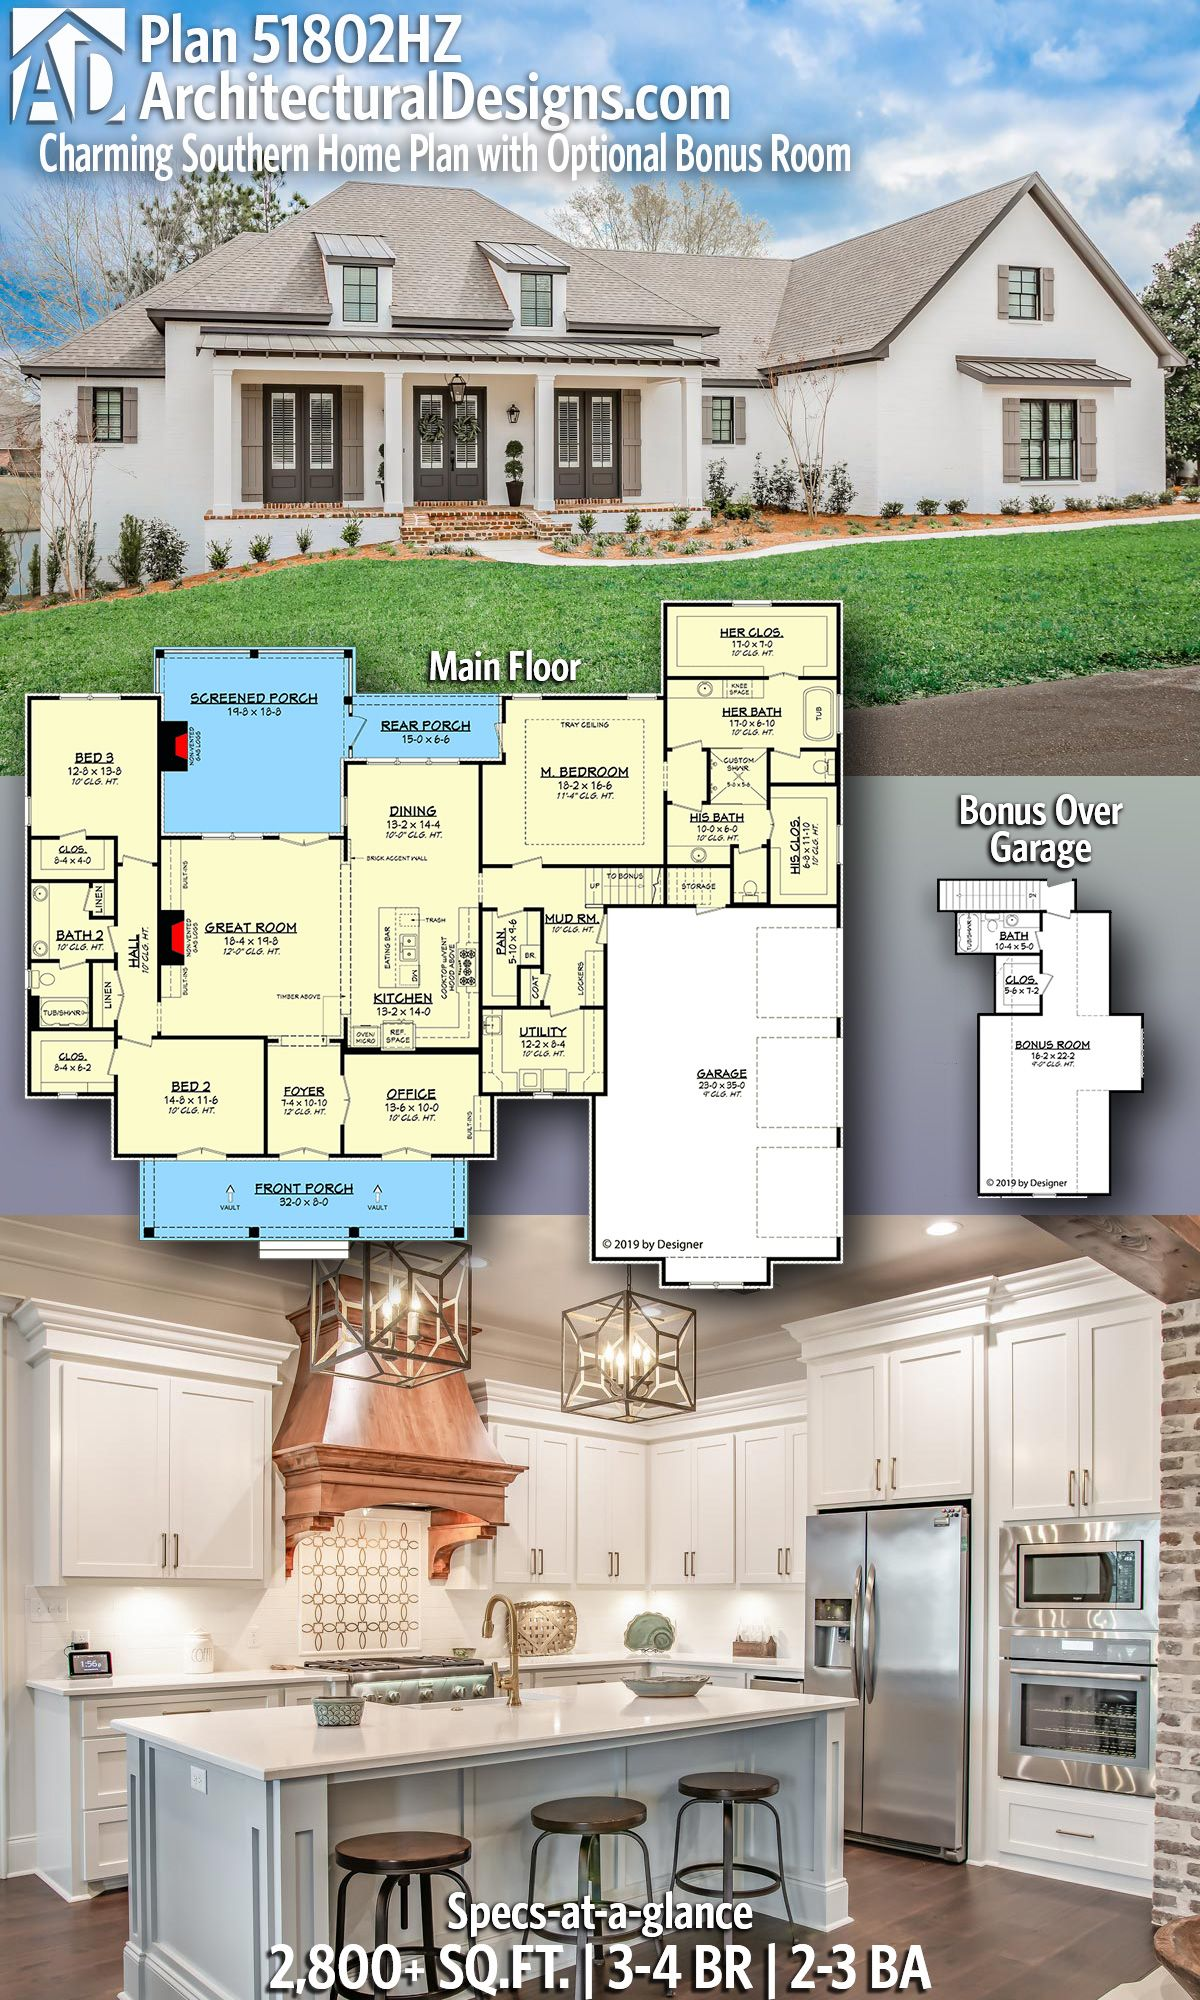 Architectural Designs Southern Home Plan 51802hz With 3 4 Bed 2 3 Bath In 2 800 Sq Ft Ready Wh House Plans Farmhouse Southern House Plans Dream House Plans